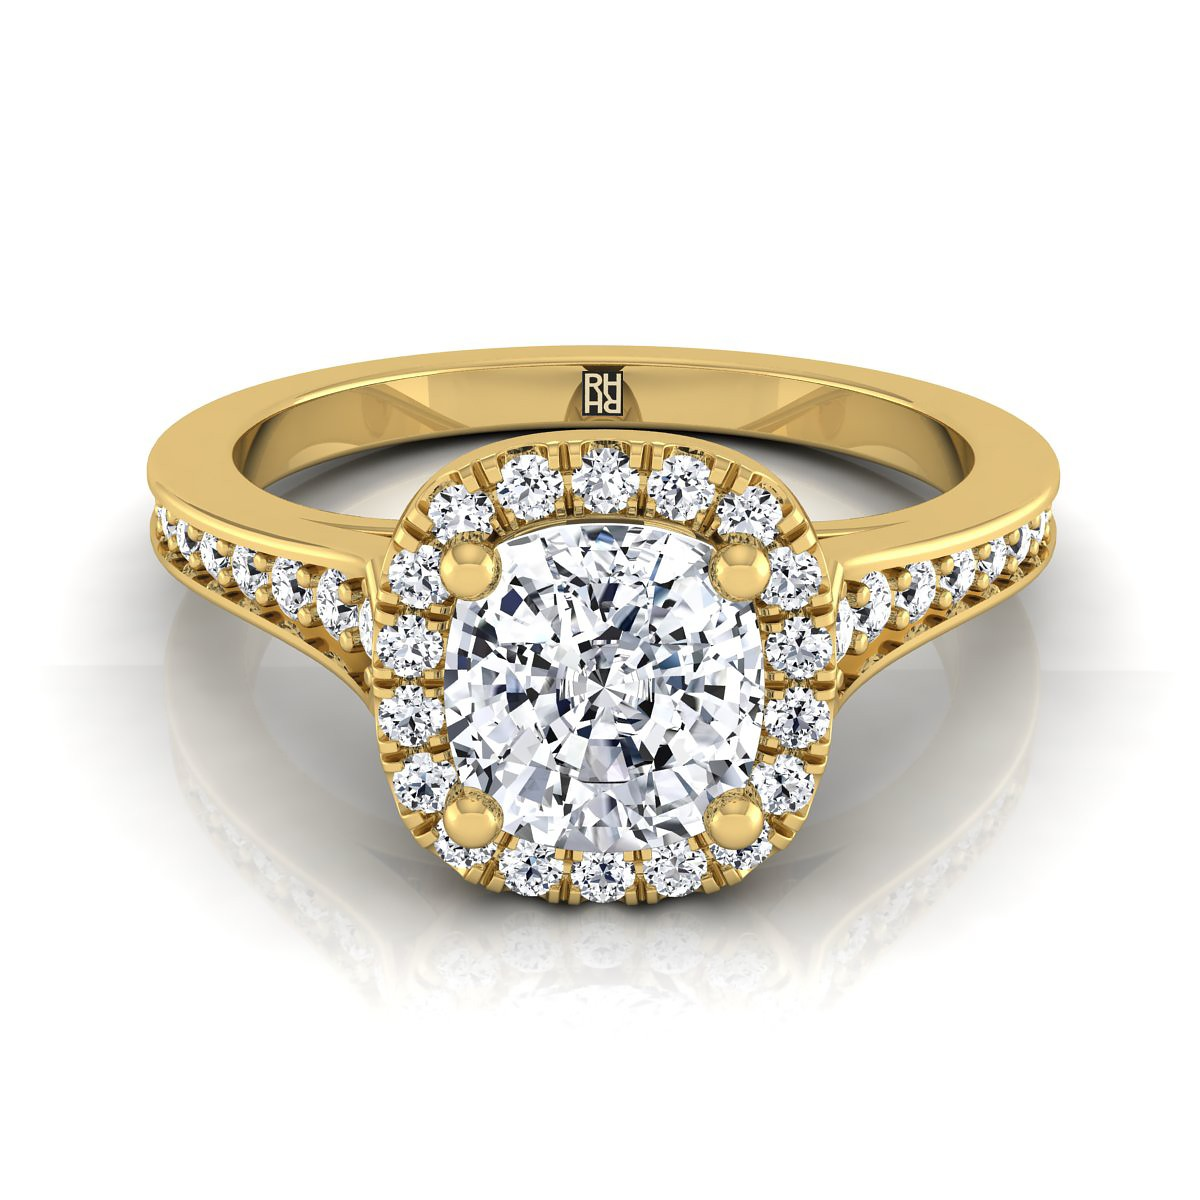 Cushion Cut Diamond Engagement Ring With Halo Frame And Pave Shank In 14k Yellow Gold (1/3 Ct.tw.)